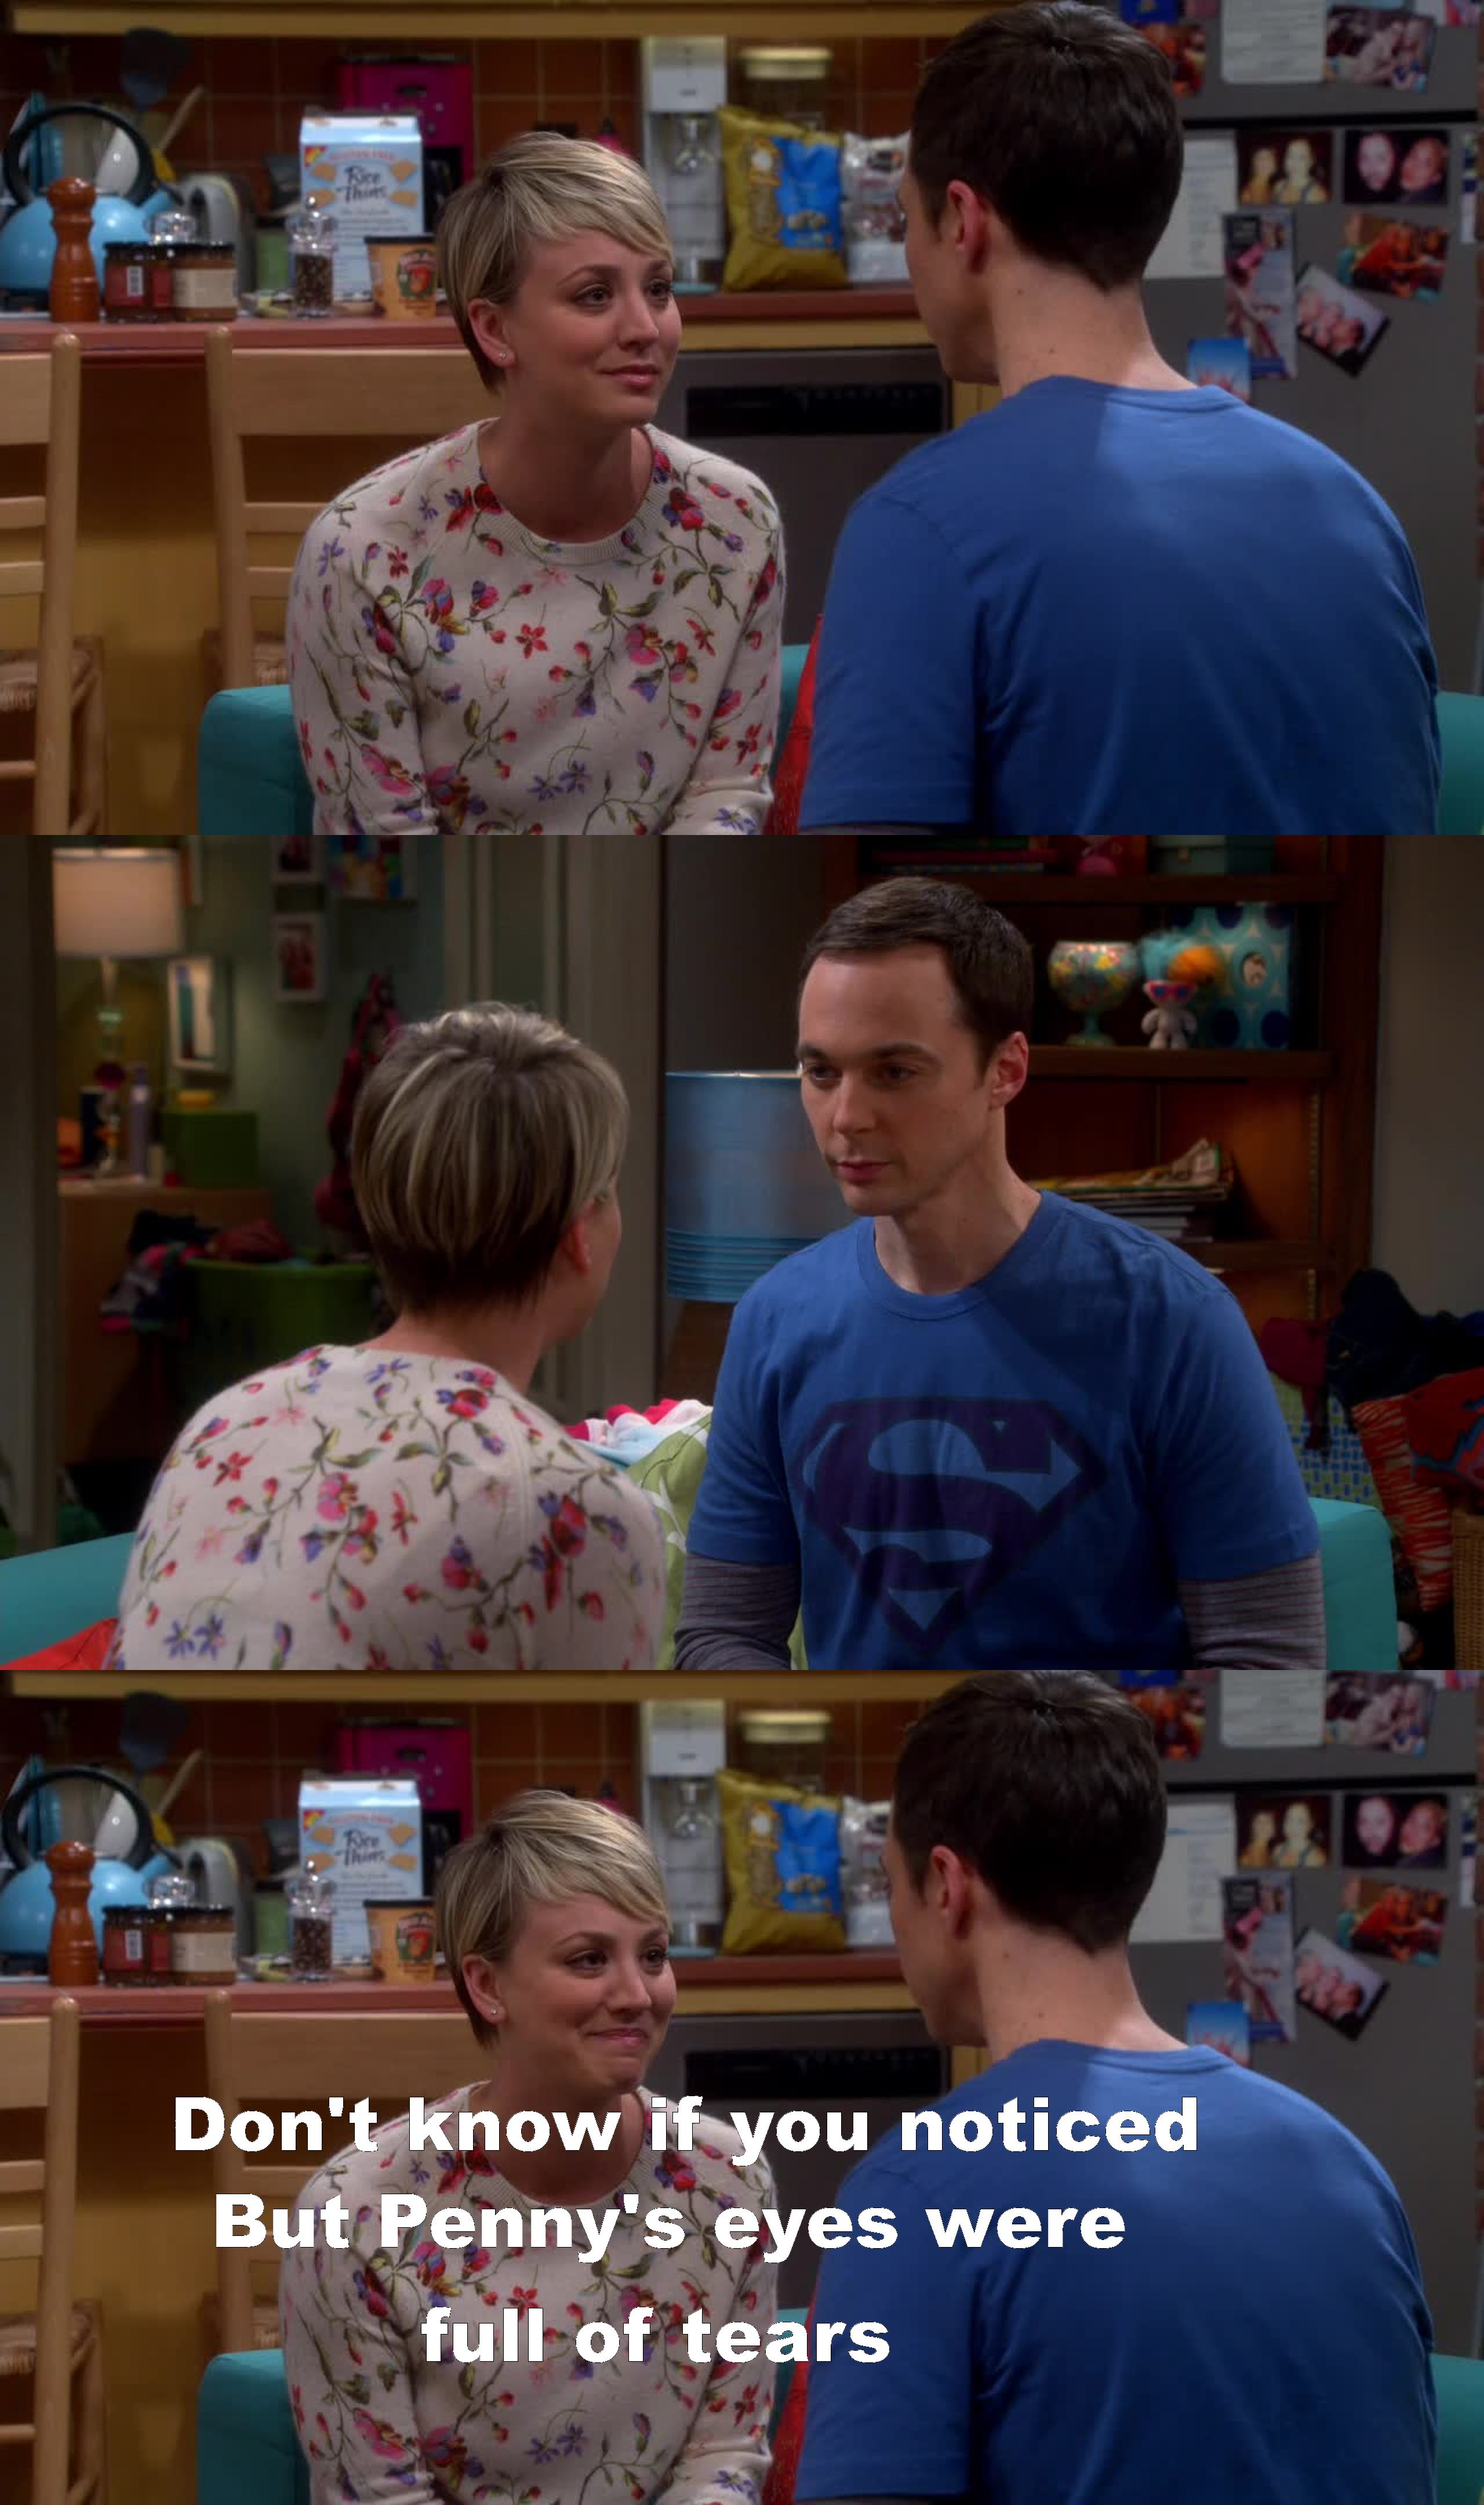 This episode was so lovely. That talk between Penny and Sheldon was really moving, i saw her eyes getting full of joy tears and that somehow filled my heart.